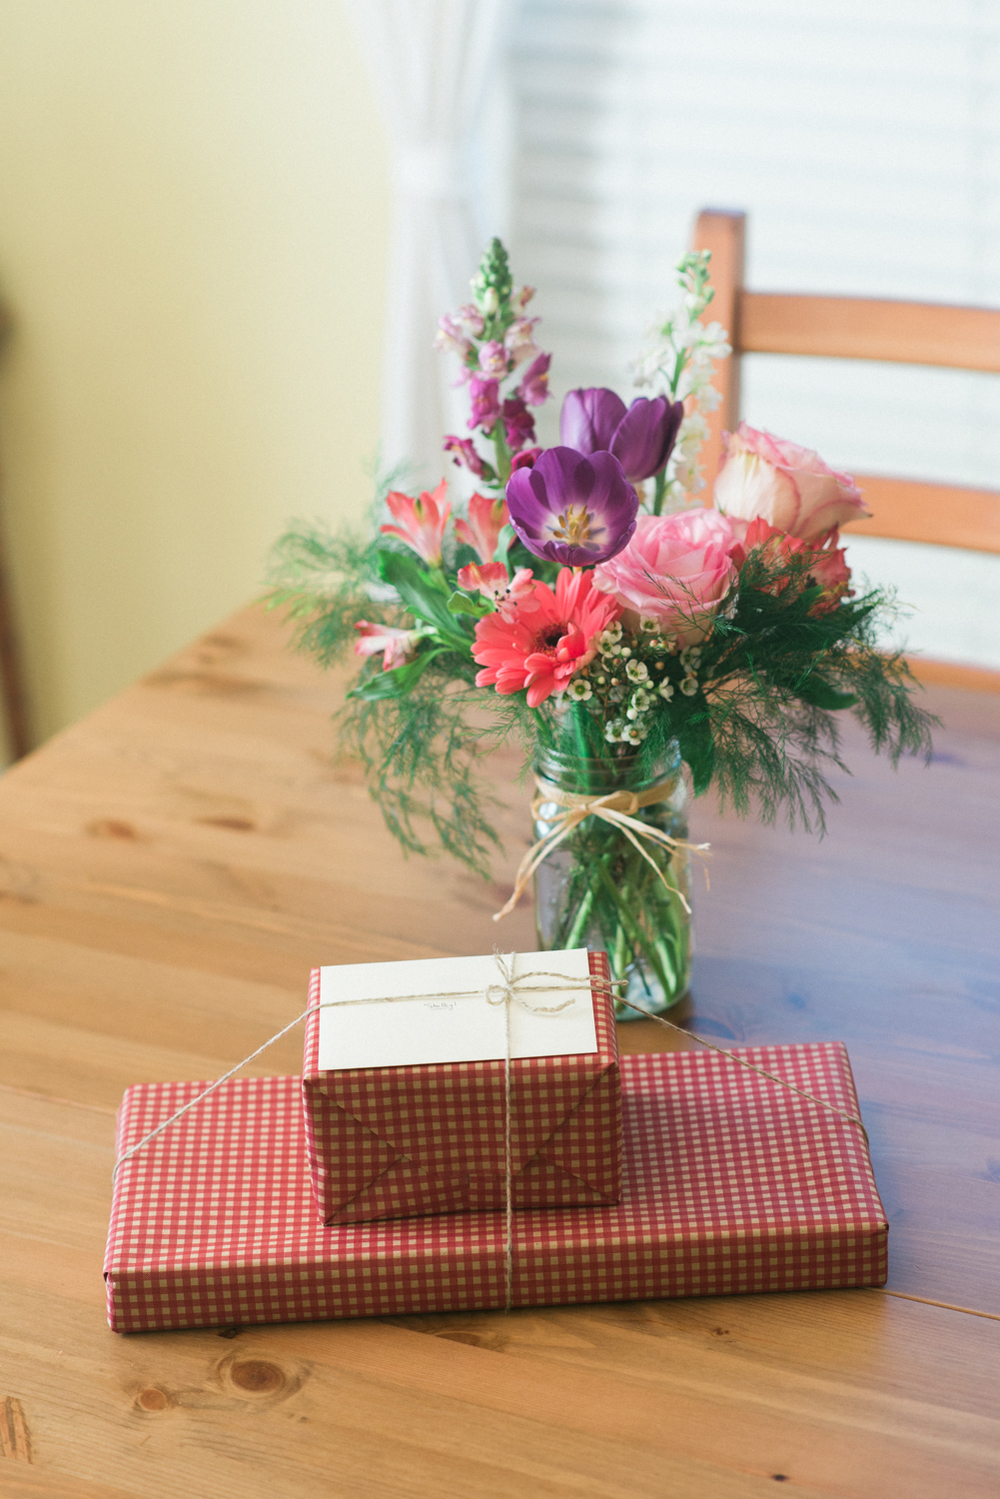 valentines-day-2015-mason-jar-portland-oregon-shelley-marie-photo-2.jpg